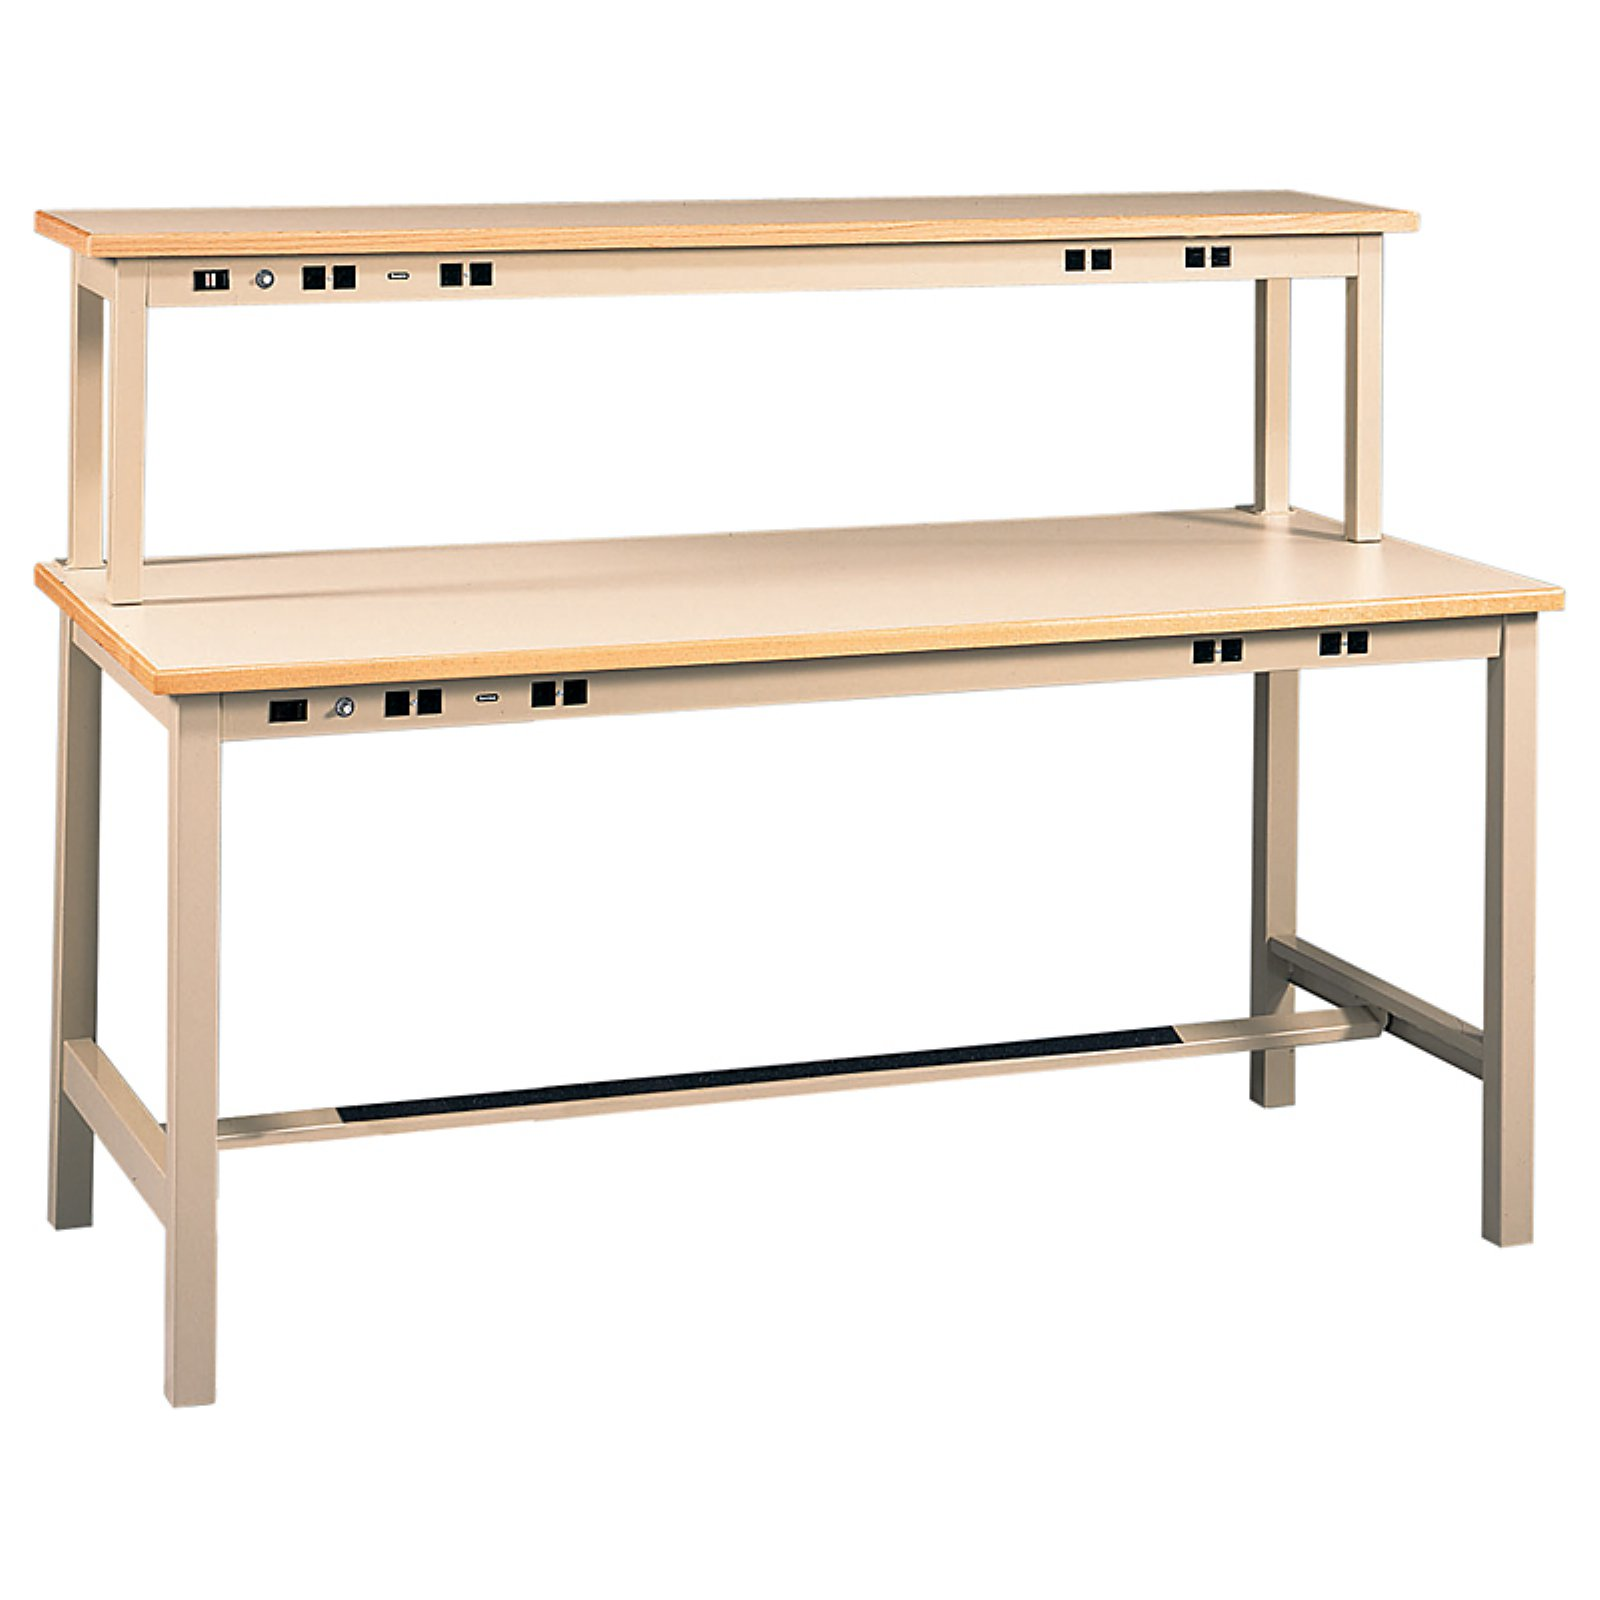 Tennsco Technical Workbench with Power Rail and Instrument Shelf-72 inches by Tennsco Corp